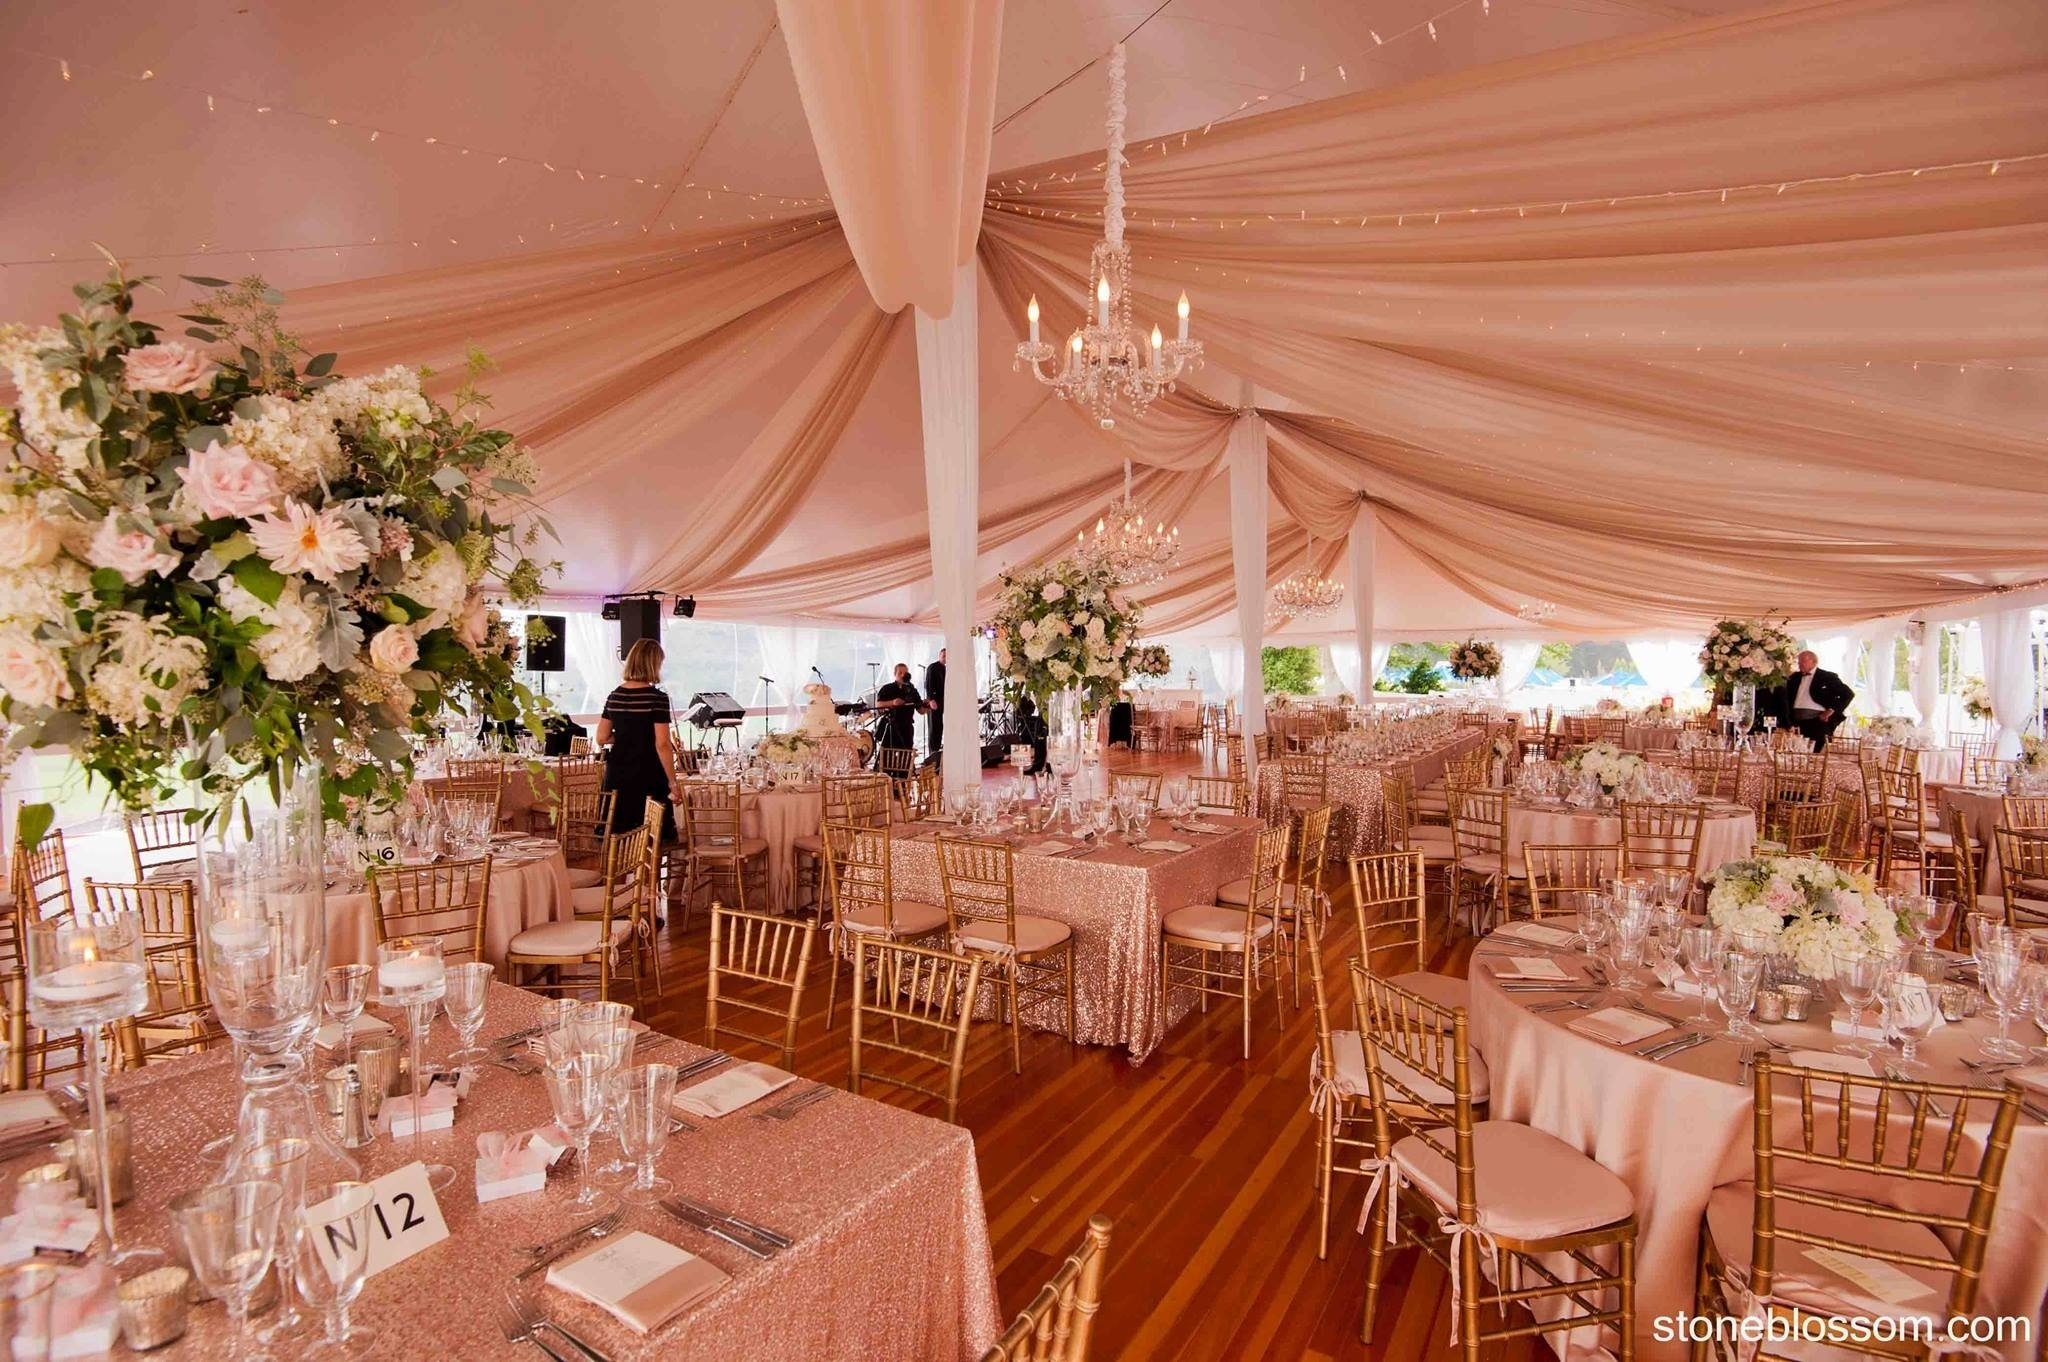 10 Spectacular Small Intimate Wedding Reception Ideas stunning small intimate wedding reception ideas contemporary 2020